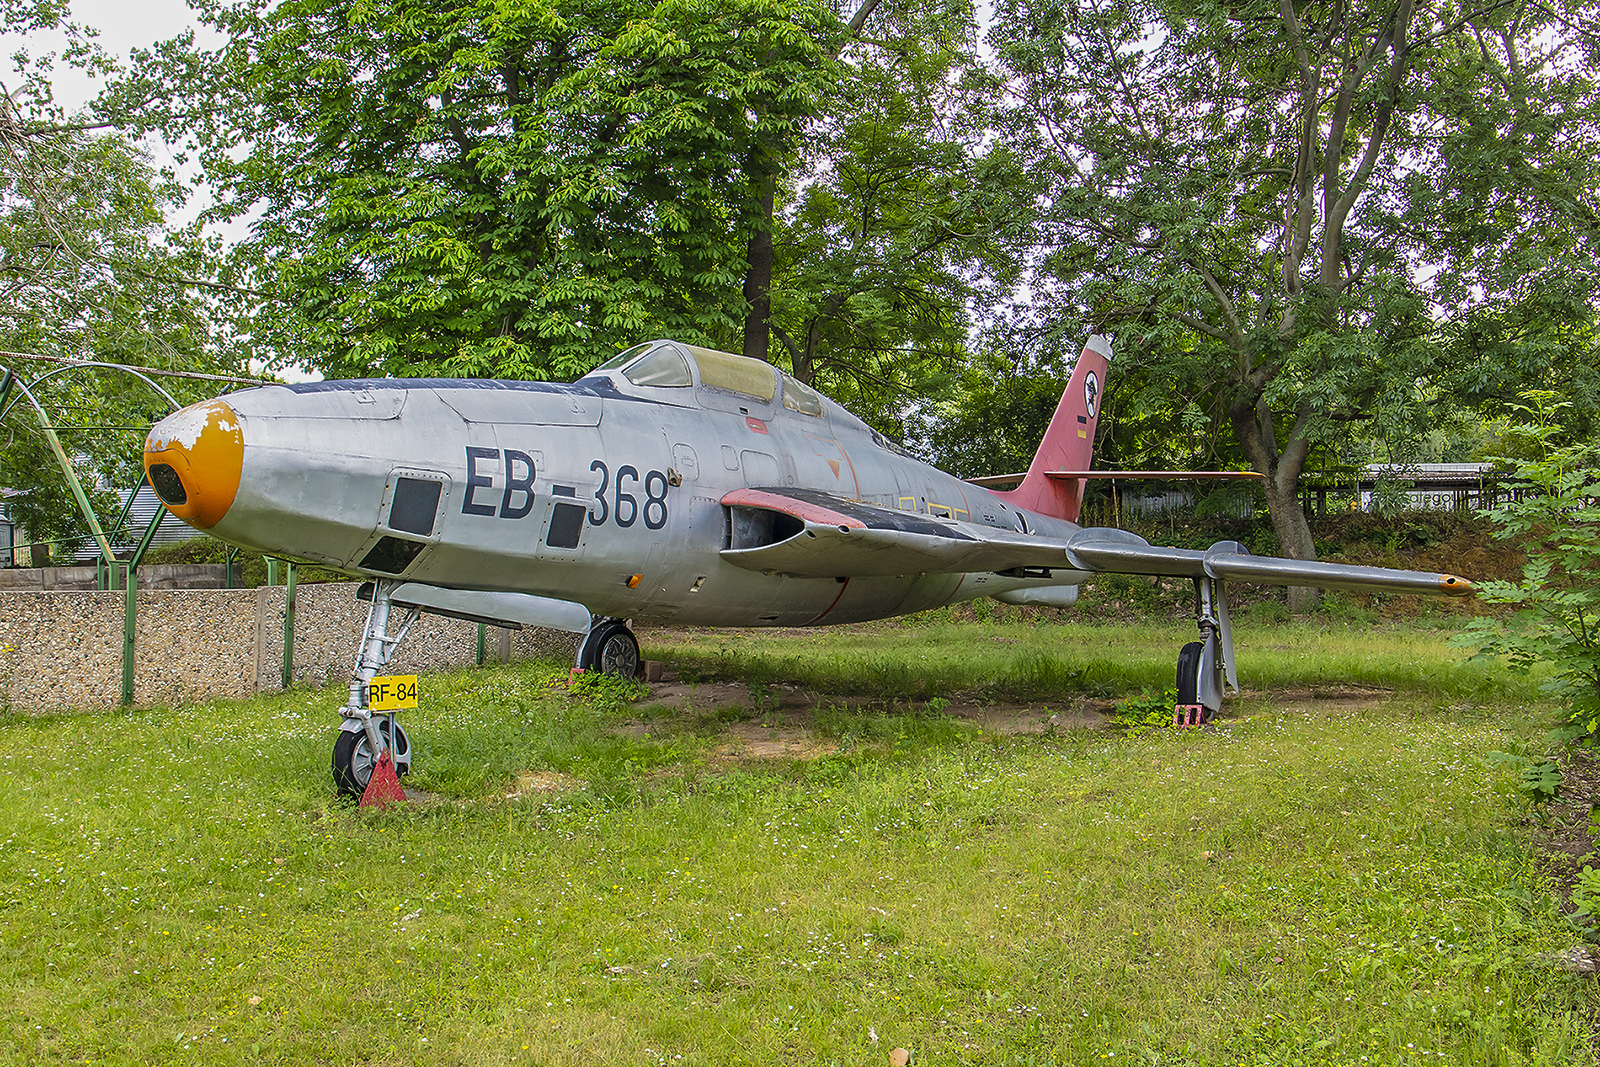 Merseburg - Republic RF-84 Thunderflash der Luftwaffe.